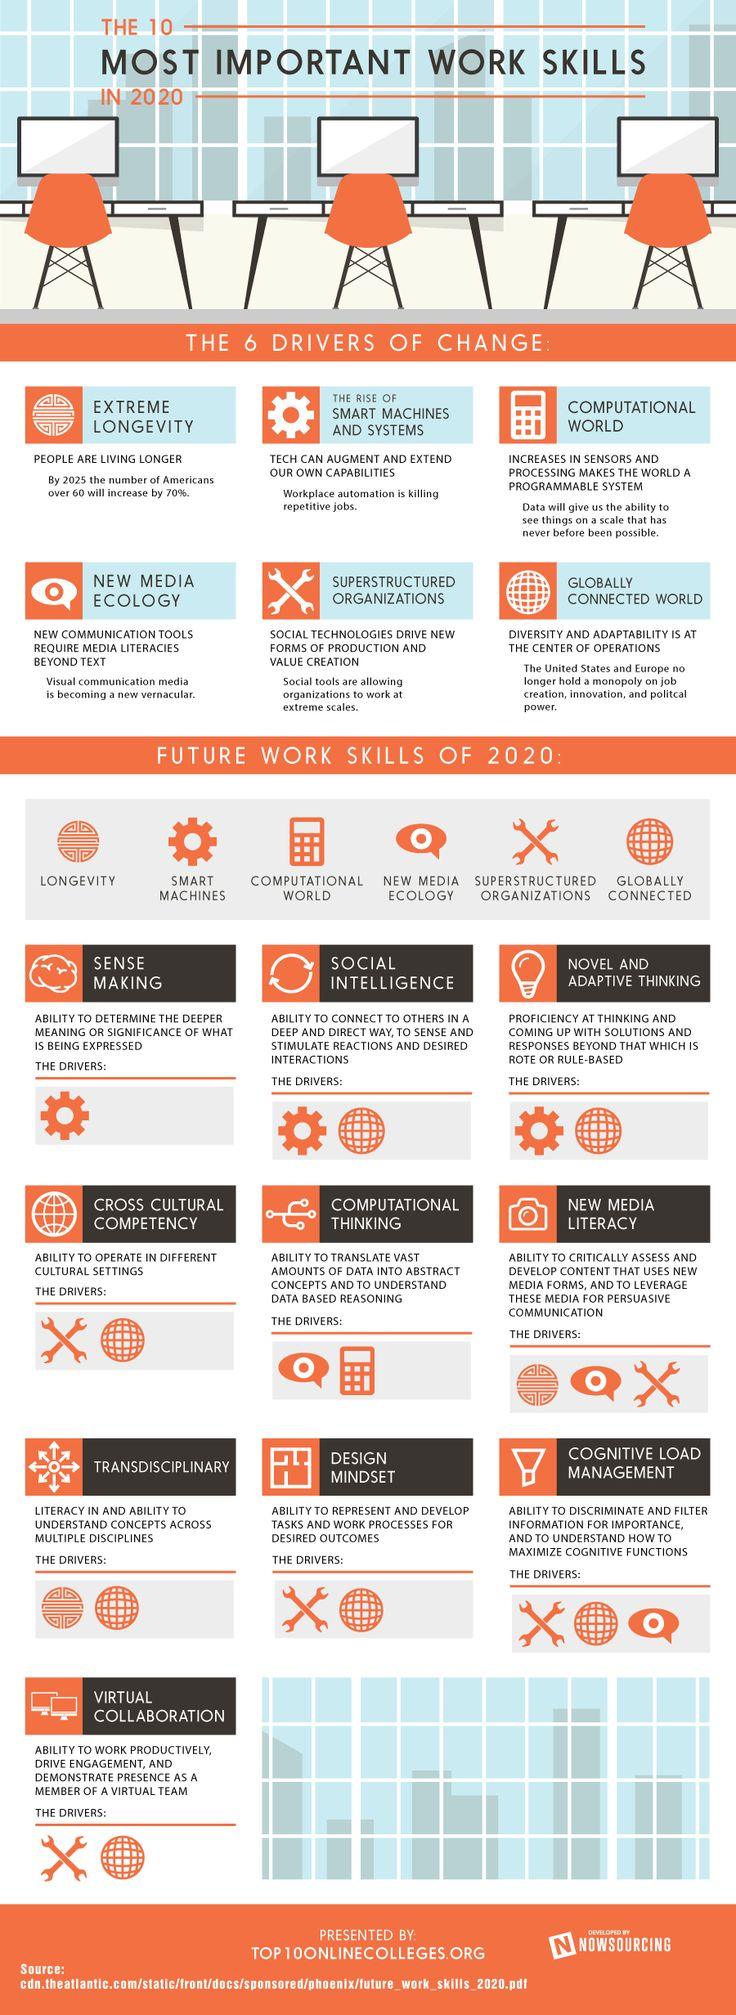 The 10 Most Important Business Skills in 2020 [Infographic].   In just six years time, the skills you'll be looking for in star employees will be vastly different from those ideal in today's workers. Consider this your crystal ball.